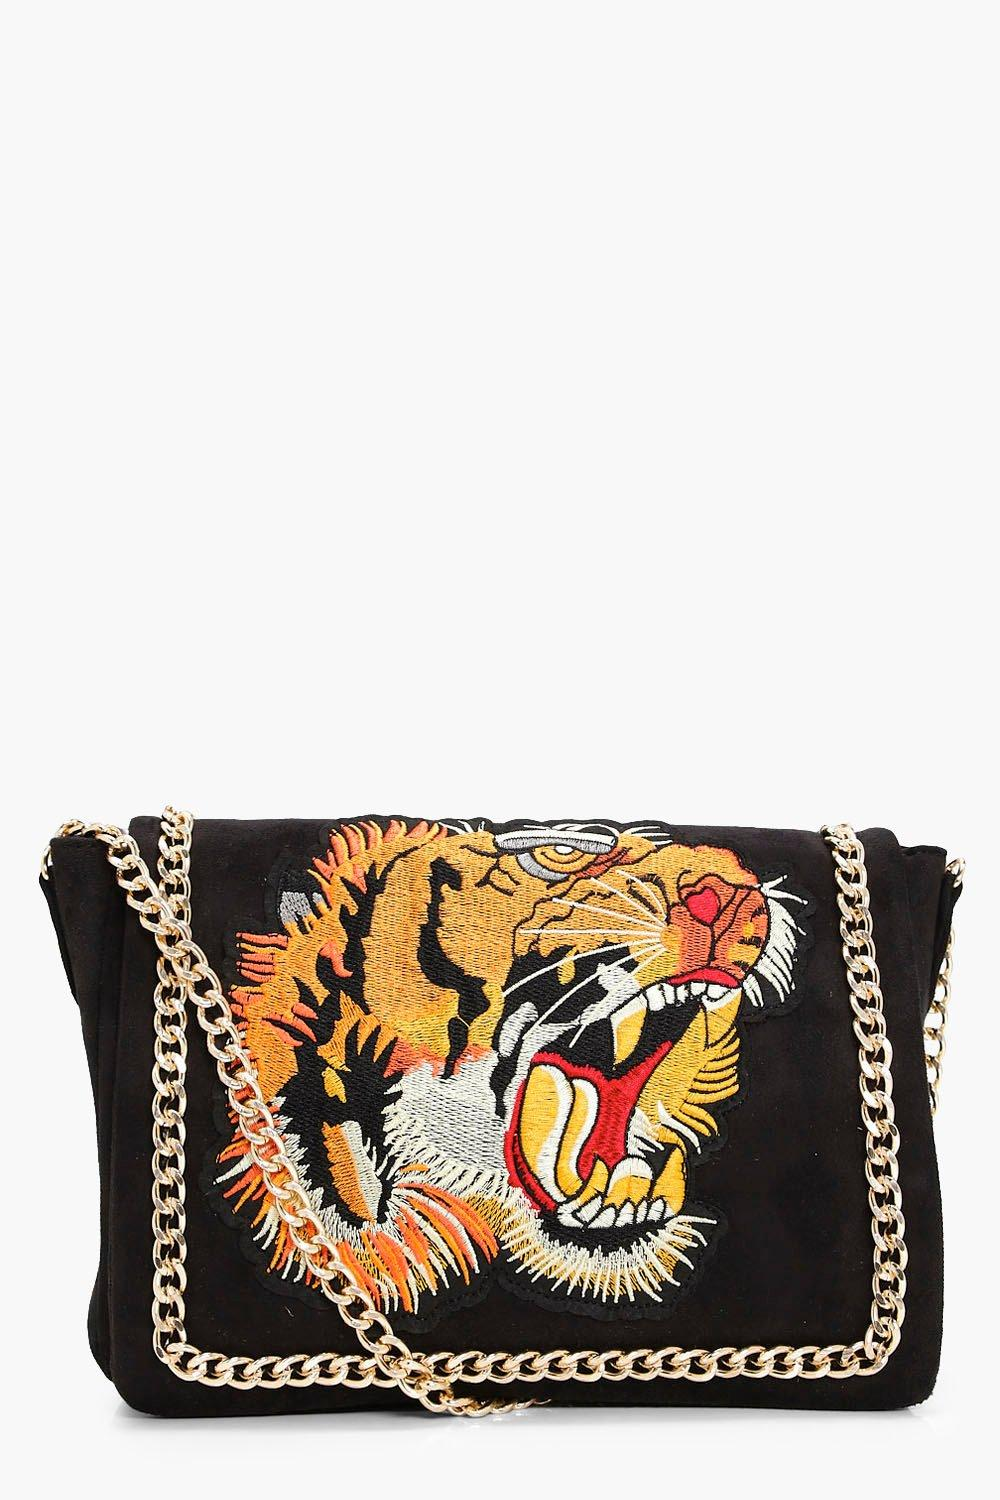 Embroidered Tiger Cross Body Bag - black - Grace E